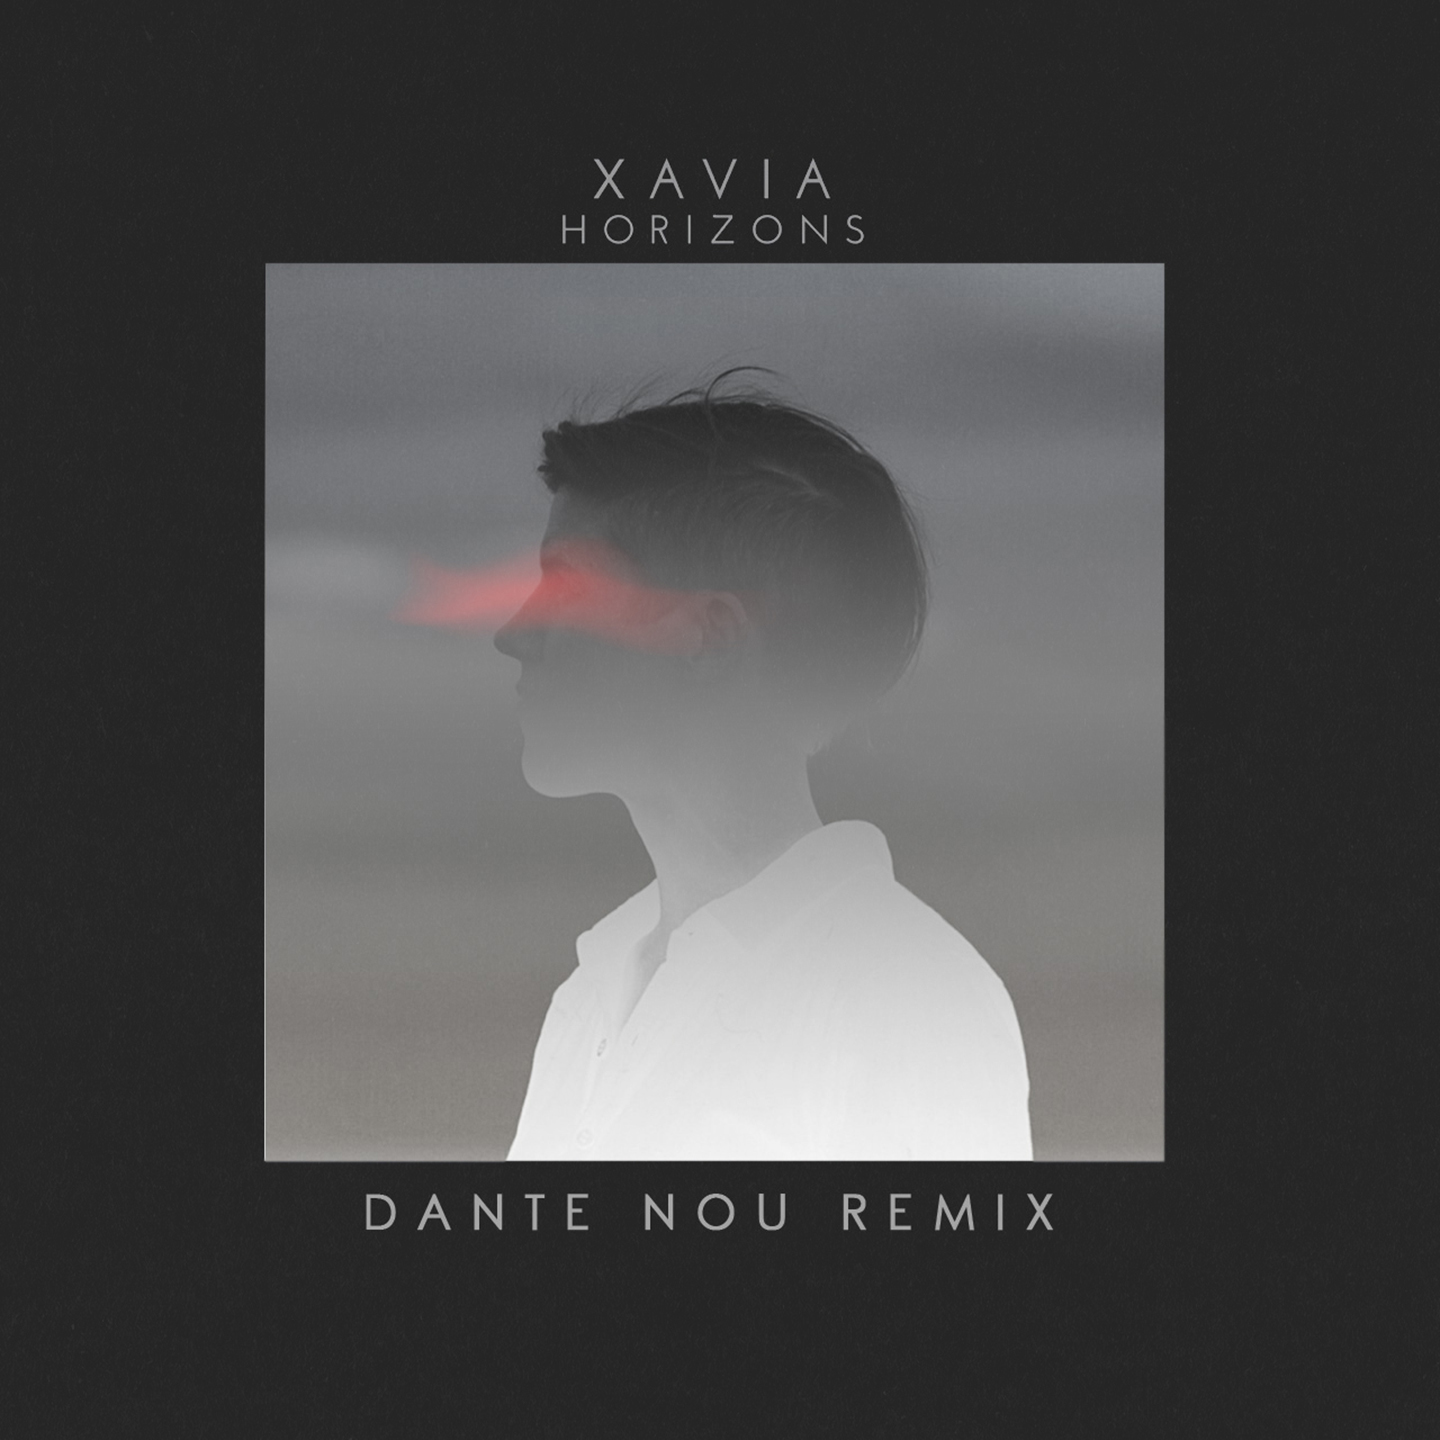 Remix, released July 2019